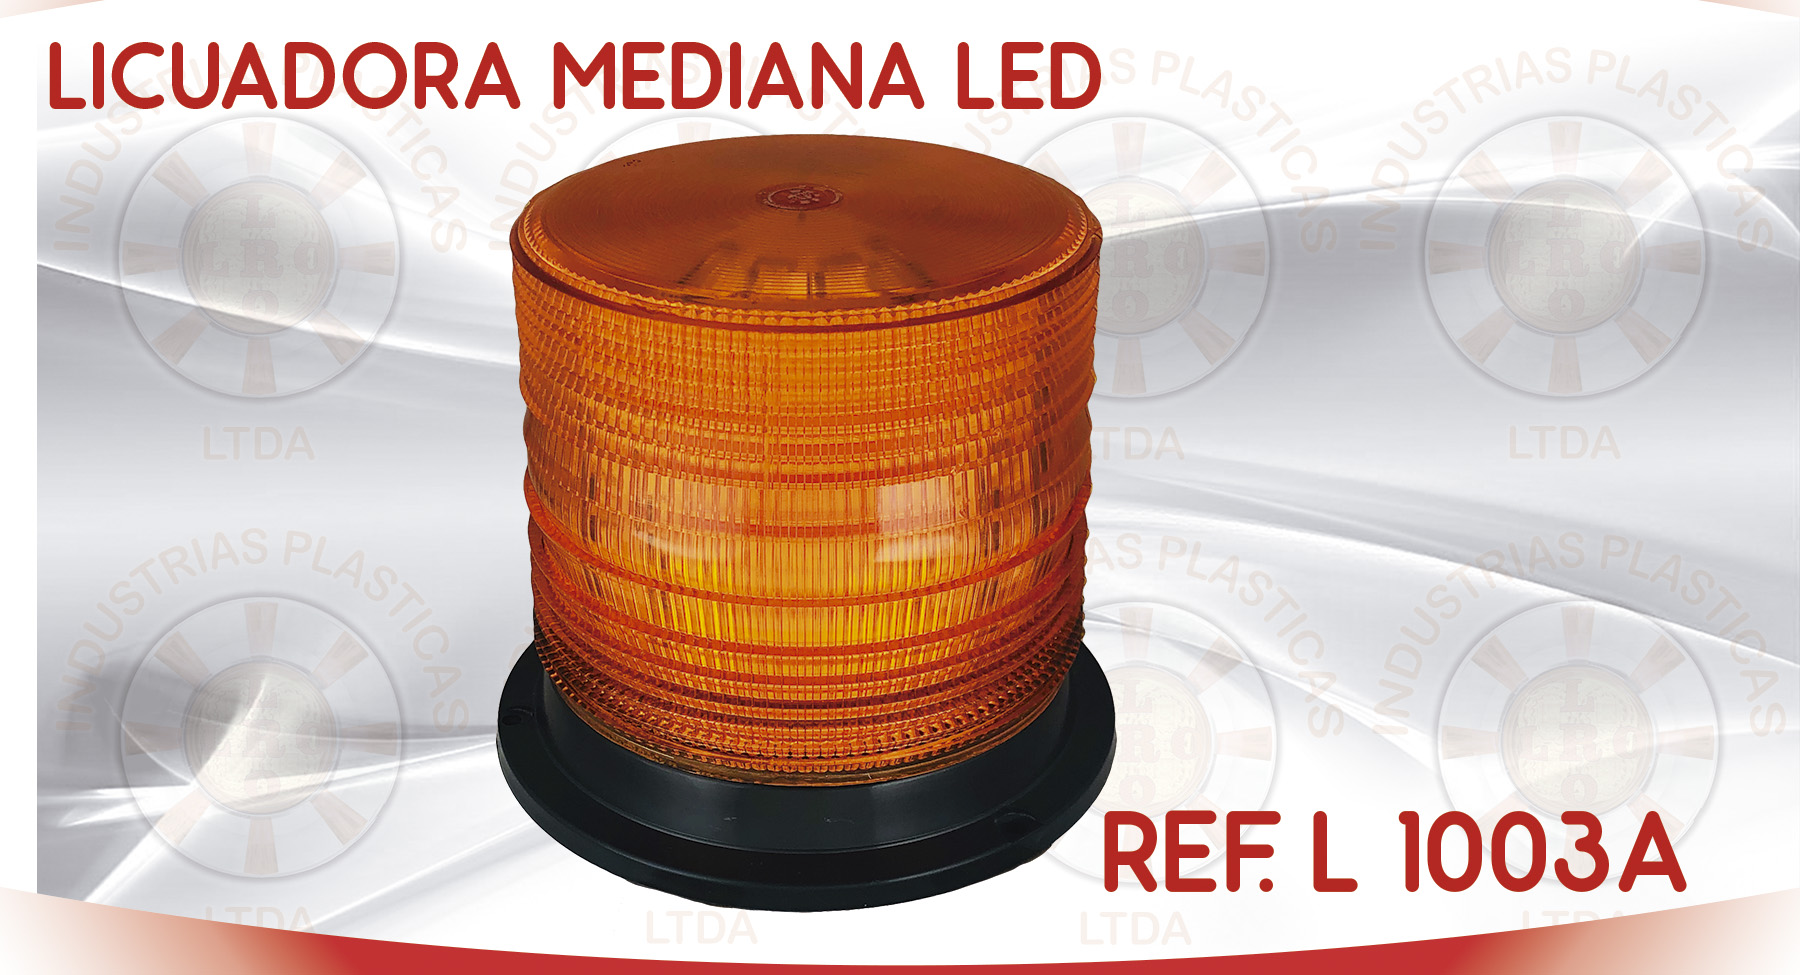 L 1003A LICUADORA MEDIANA LED